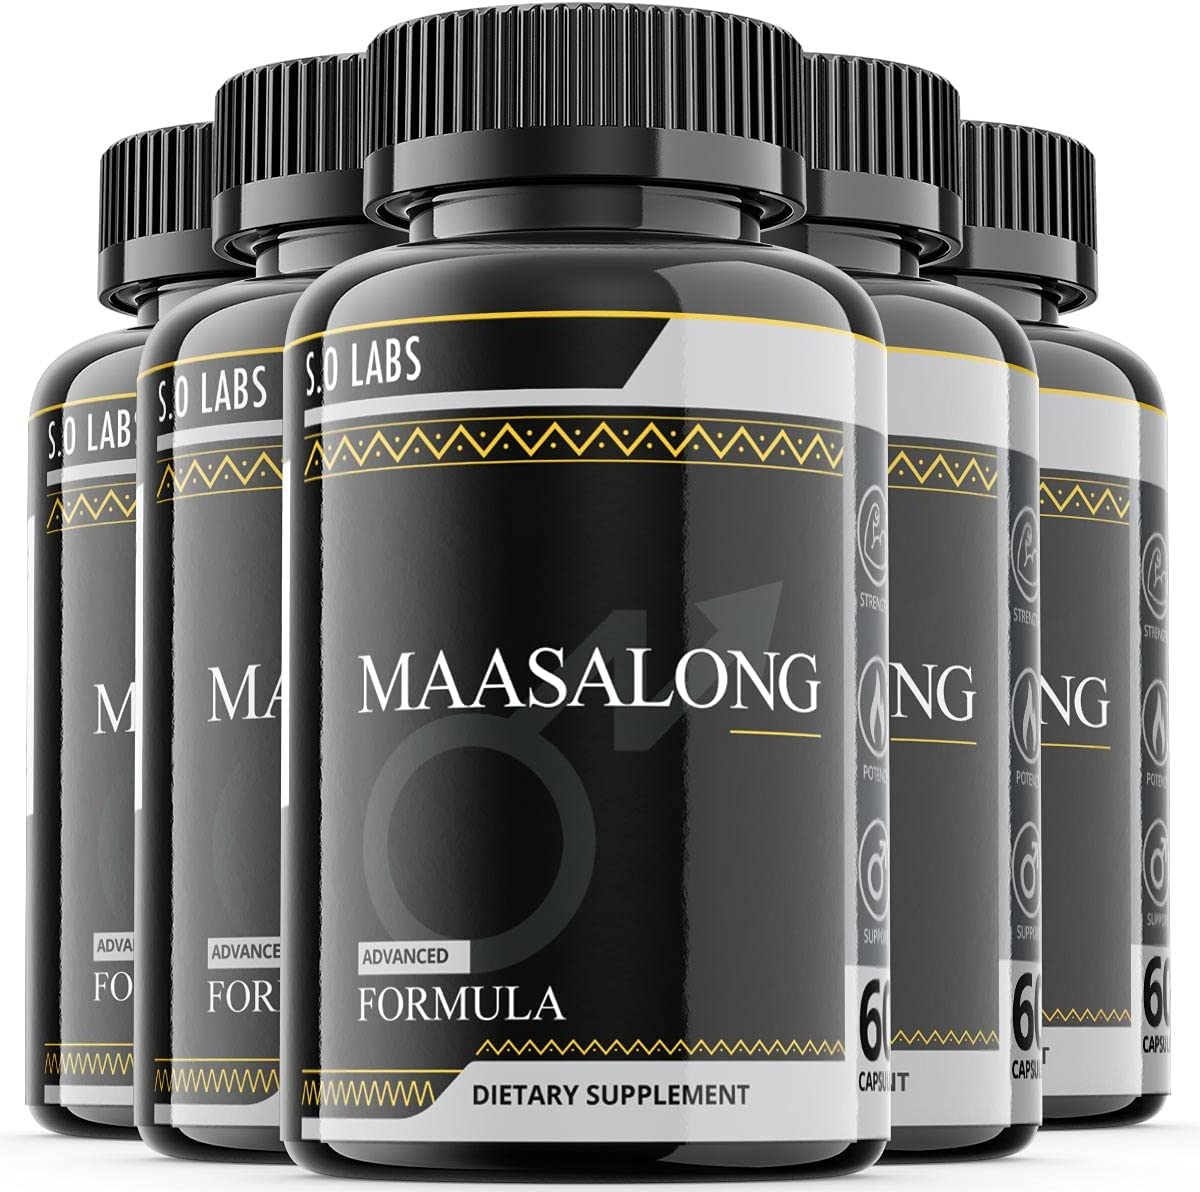 Maasalong Male Advanced Formula Test Boosting Pack 5 Enhancment ☆ very Cheap super special price popular